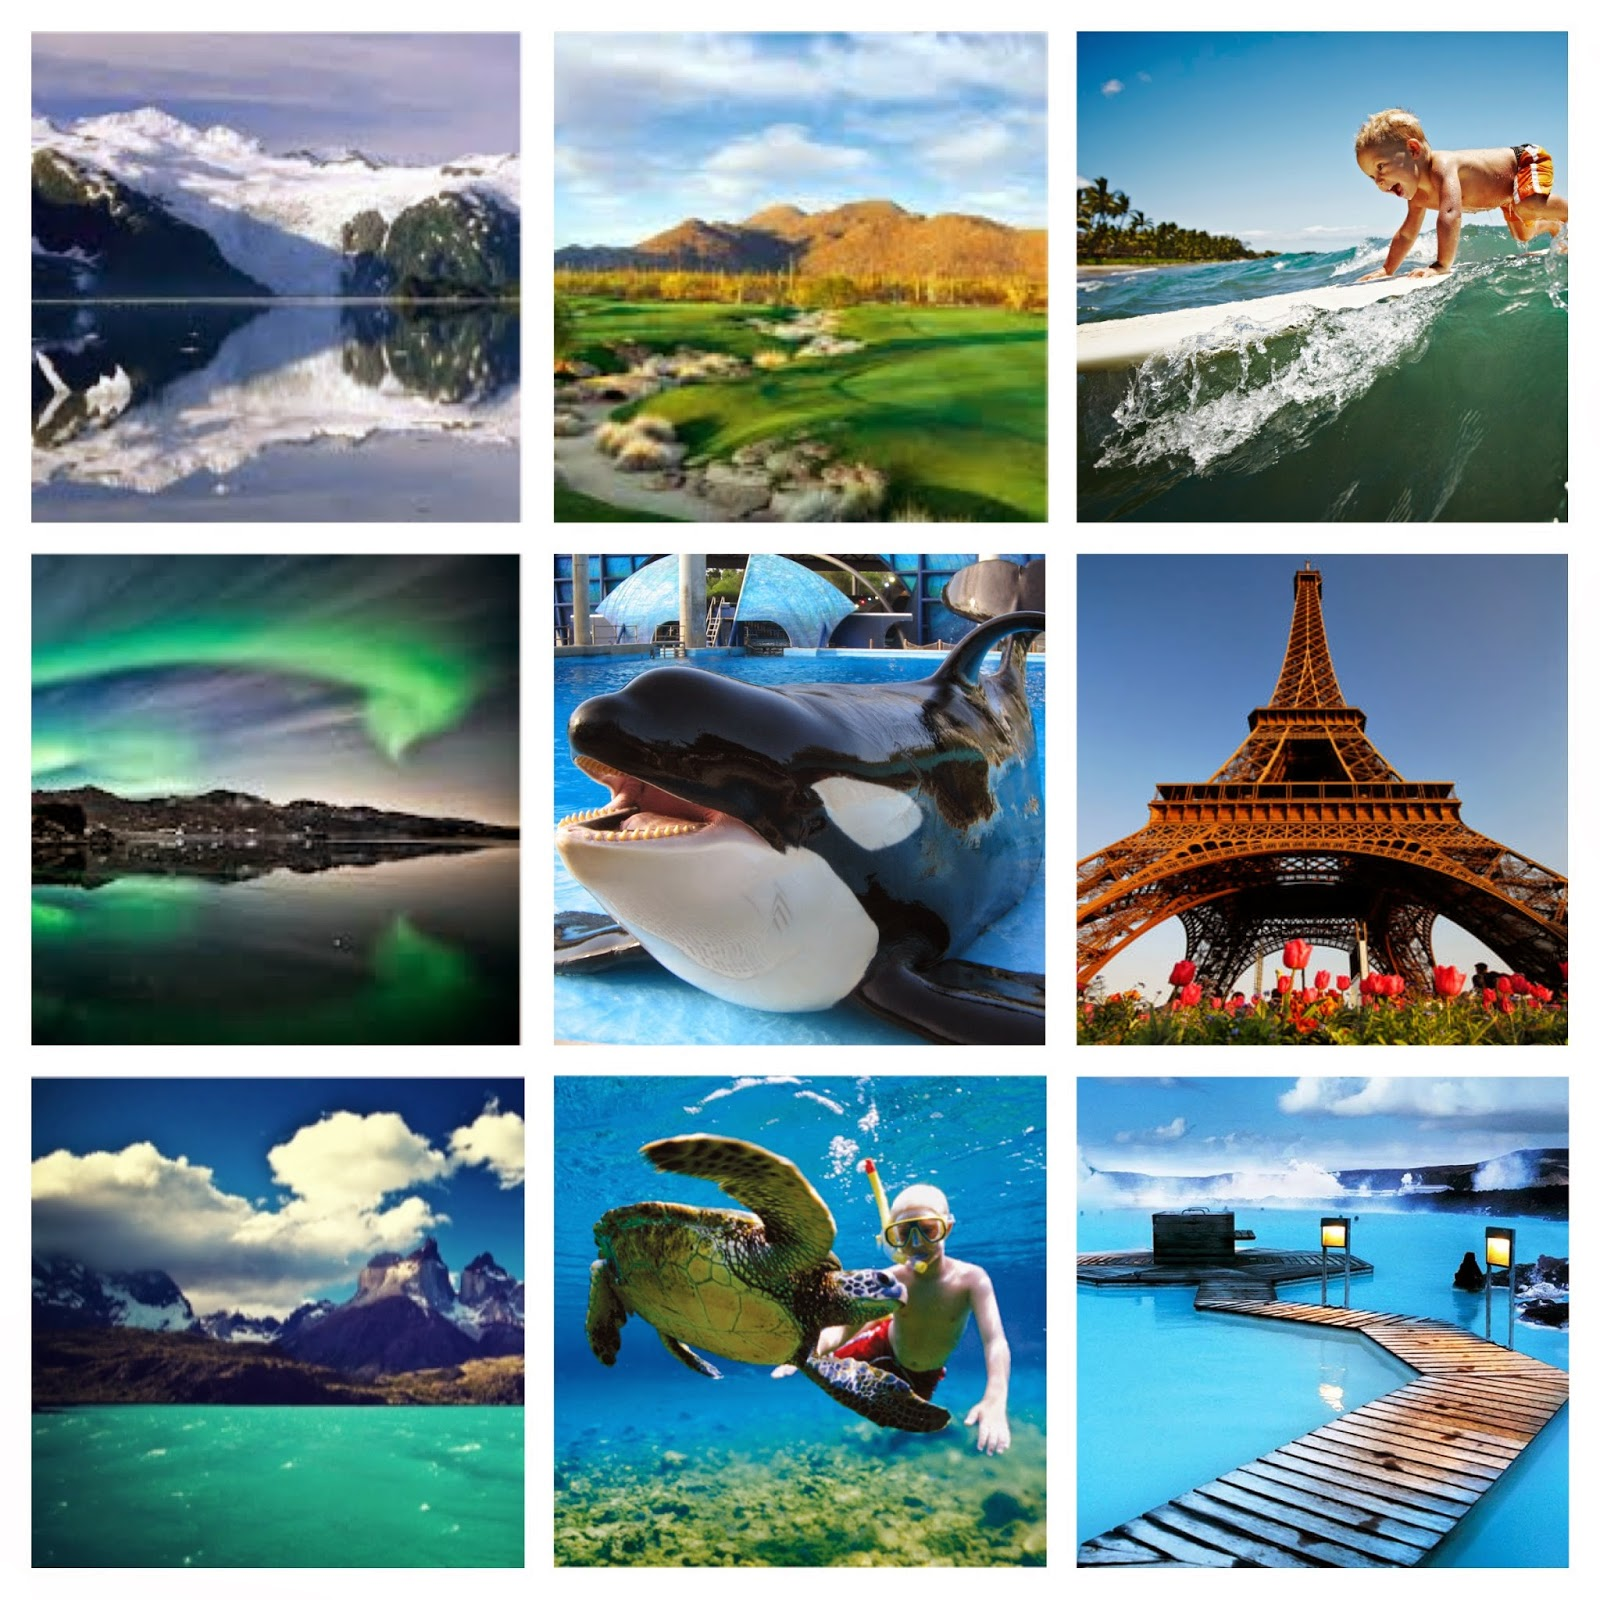 Collage Of Beautiful Locations, Animals, and Aquatic Activities